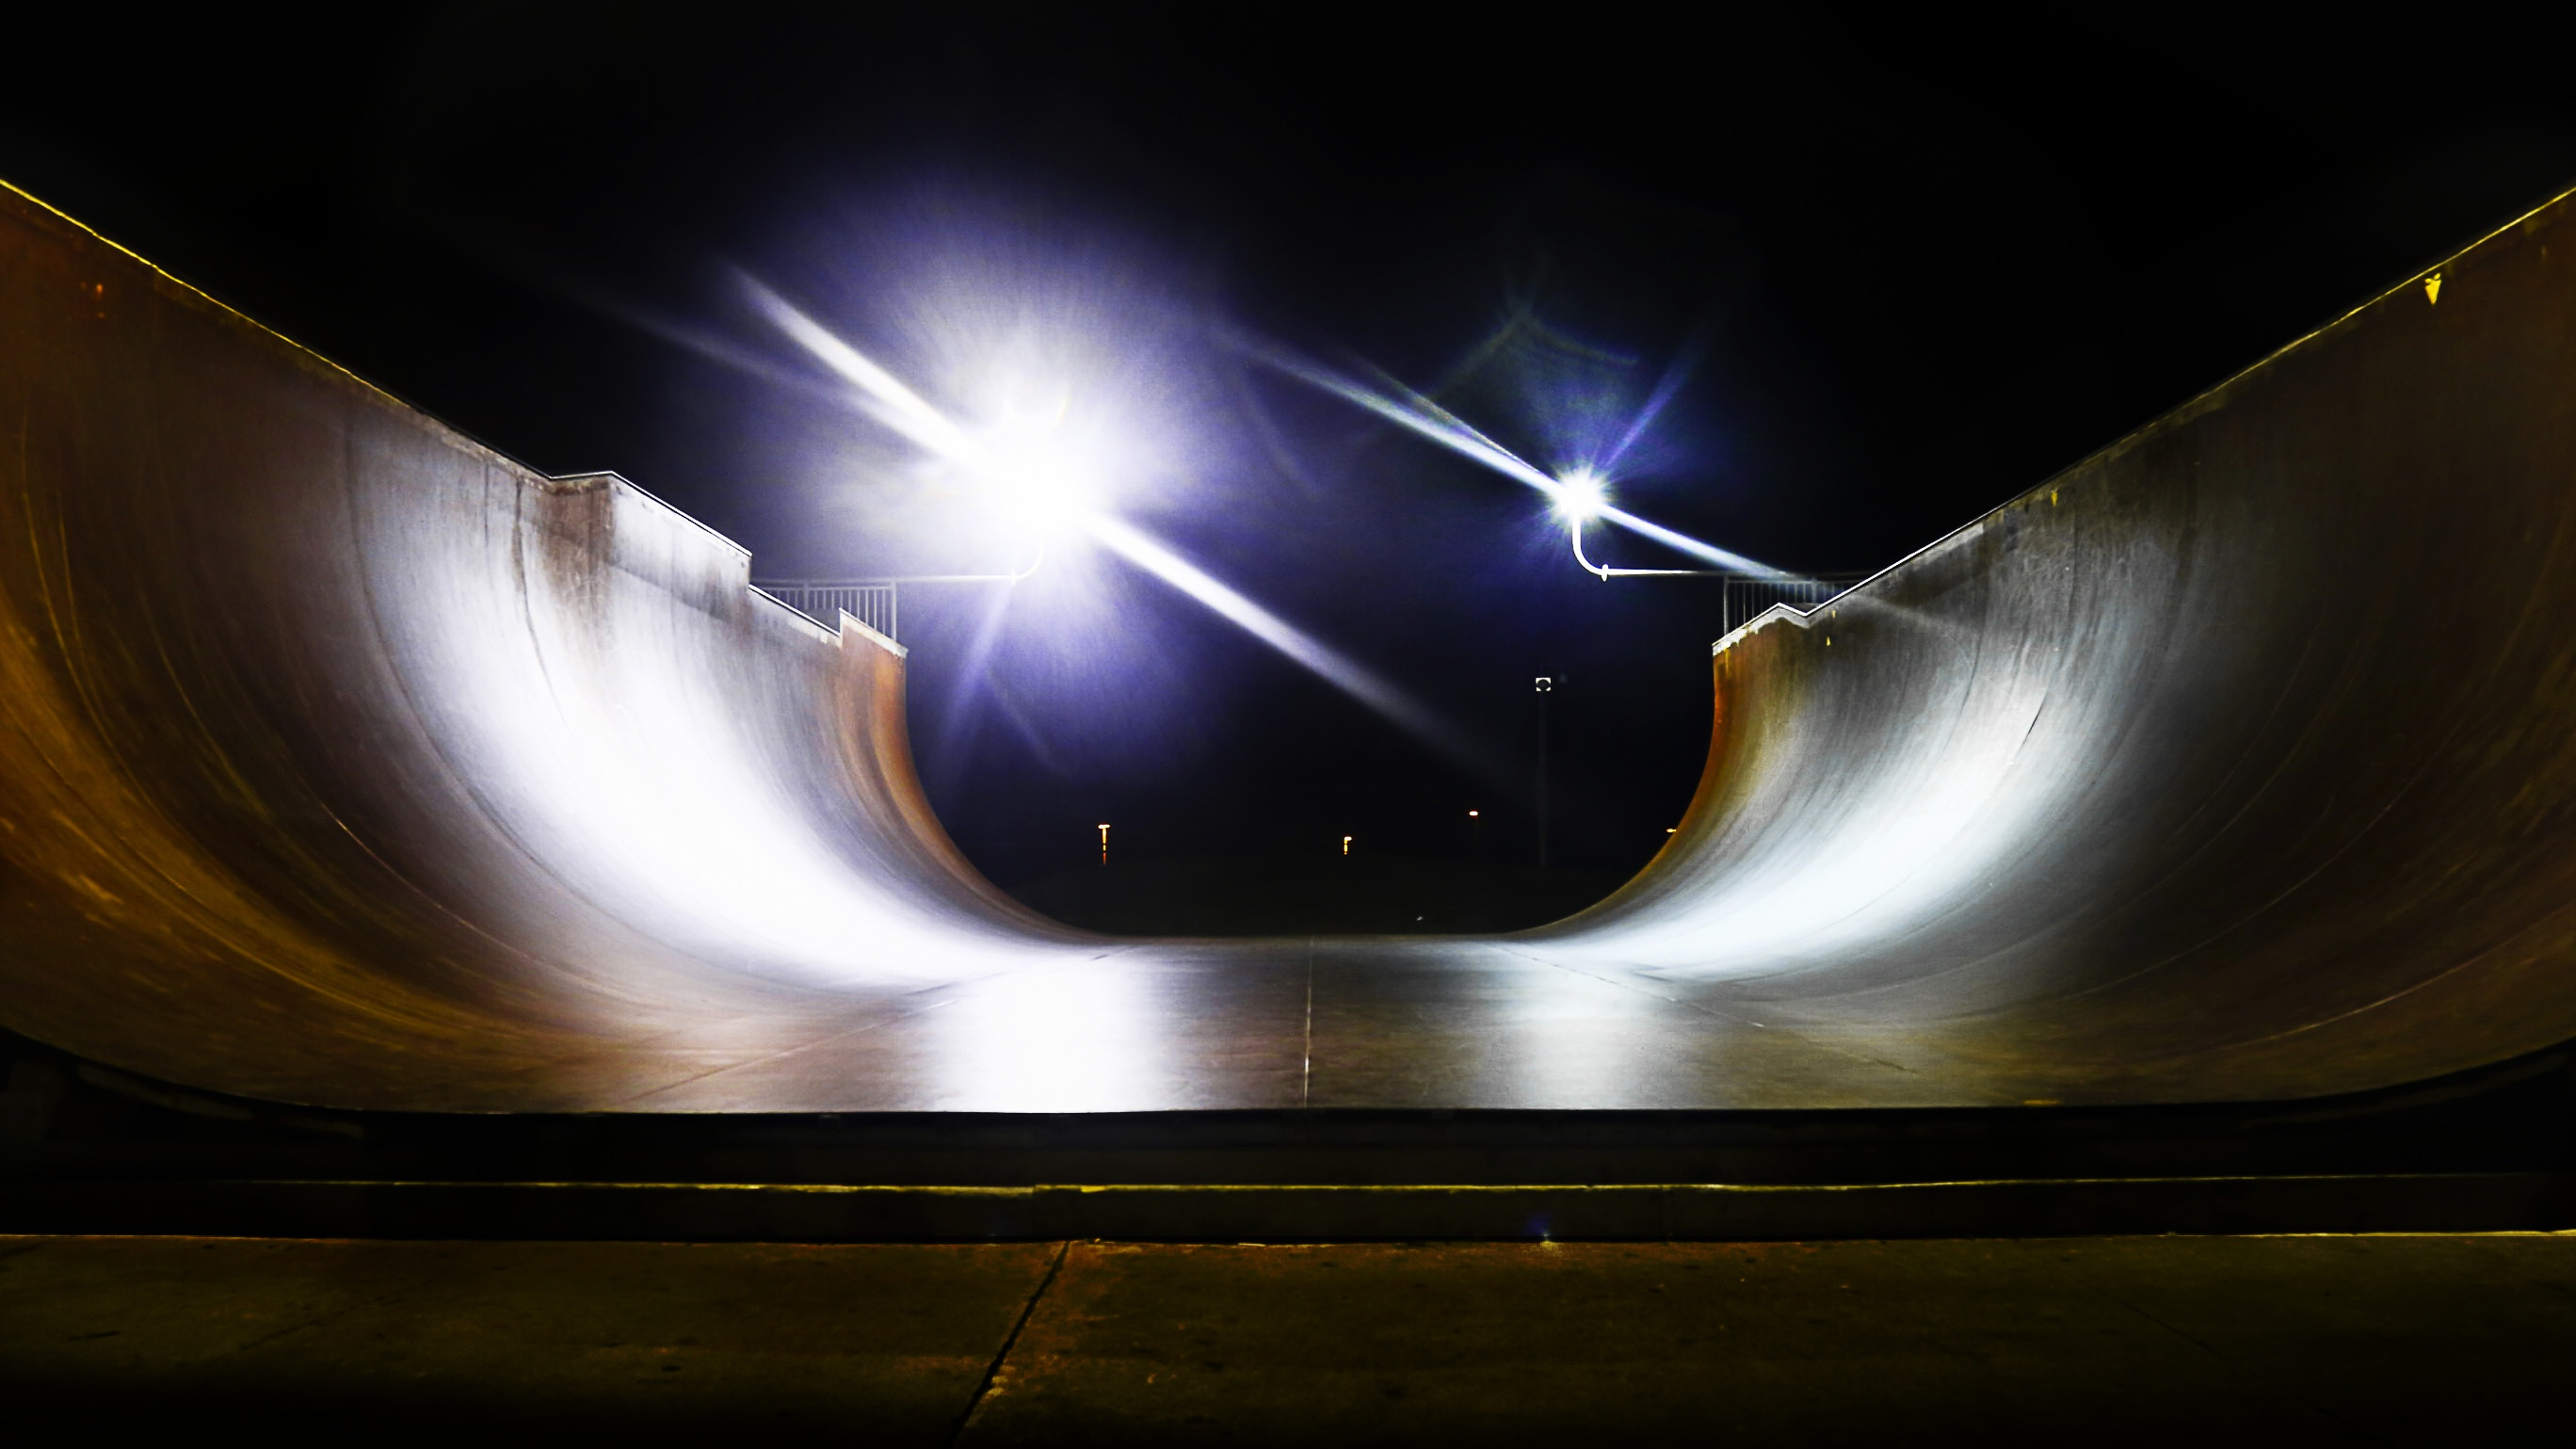 Skate Ramp, Skate, Tunnel, Ramp, Lights, HQ Photo